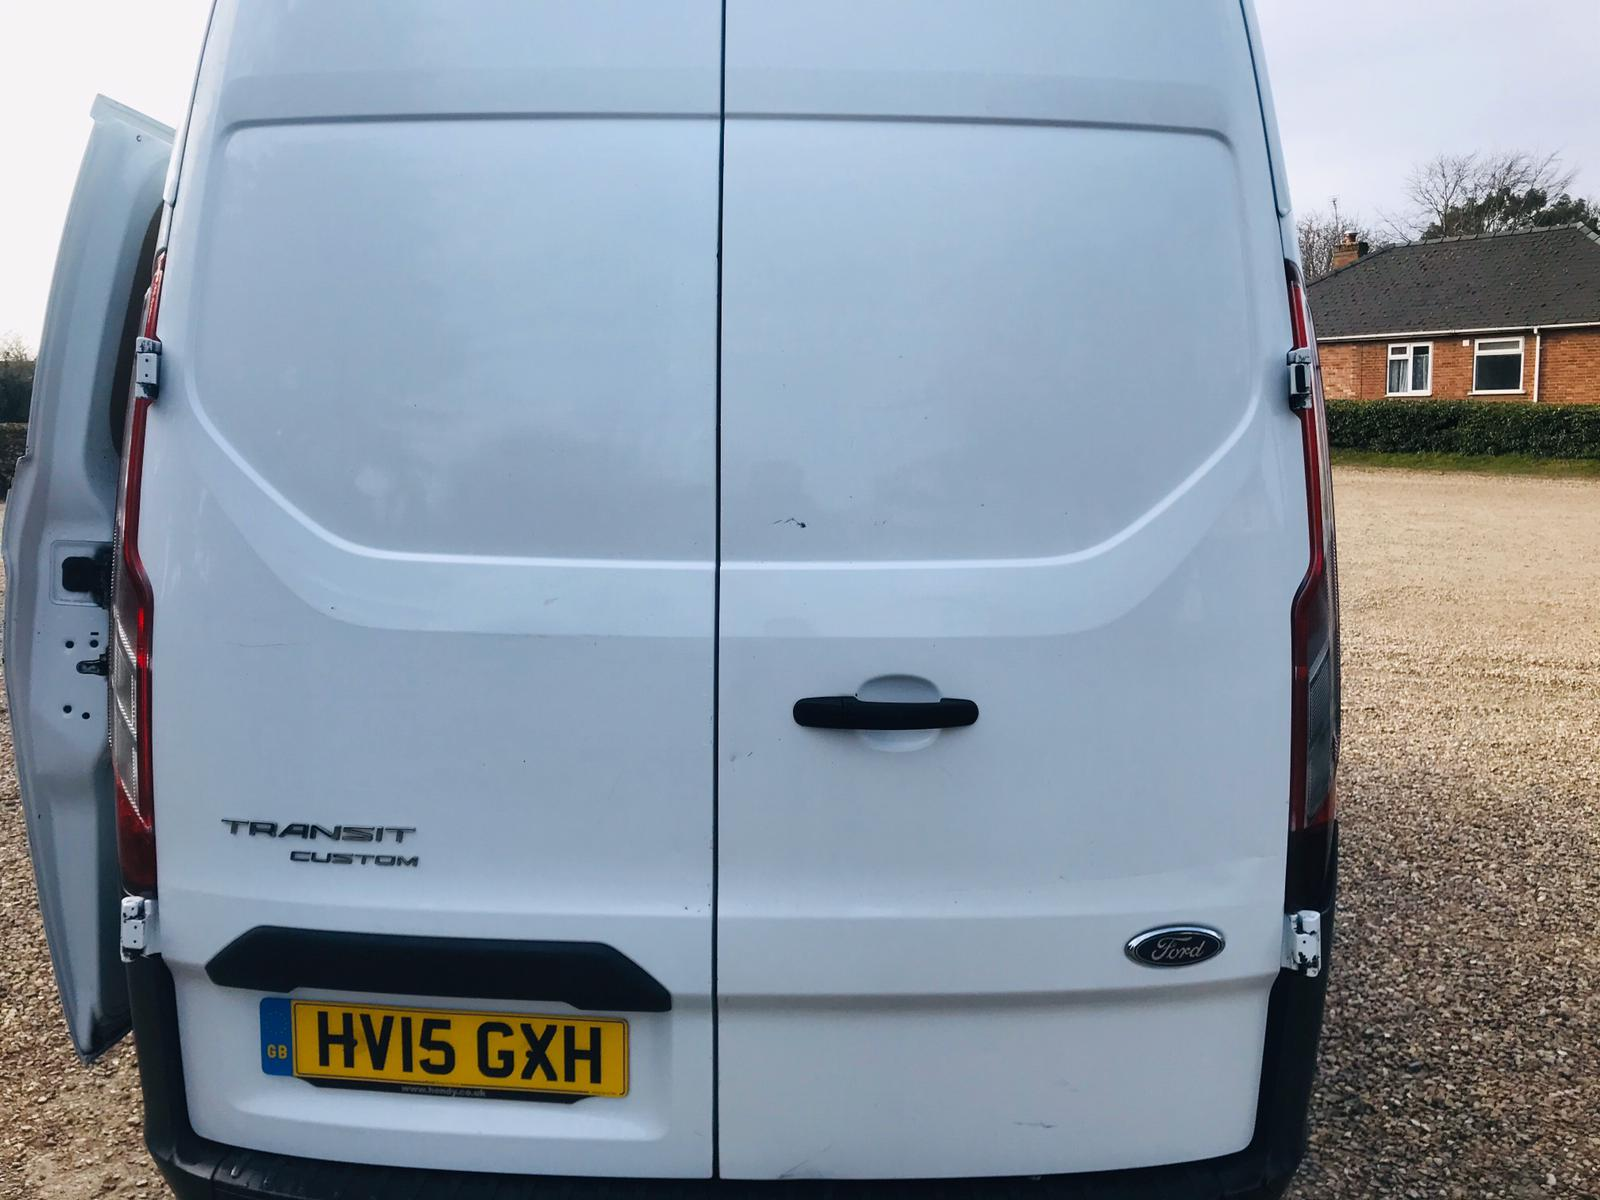 Ford Transit Custom 2.2 TDCI **HIGH ROOF** 2015 15 Reg - SAVE 20% NO VAT - Image 4 of 17